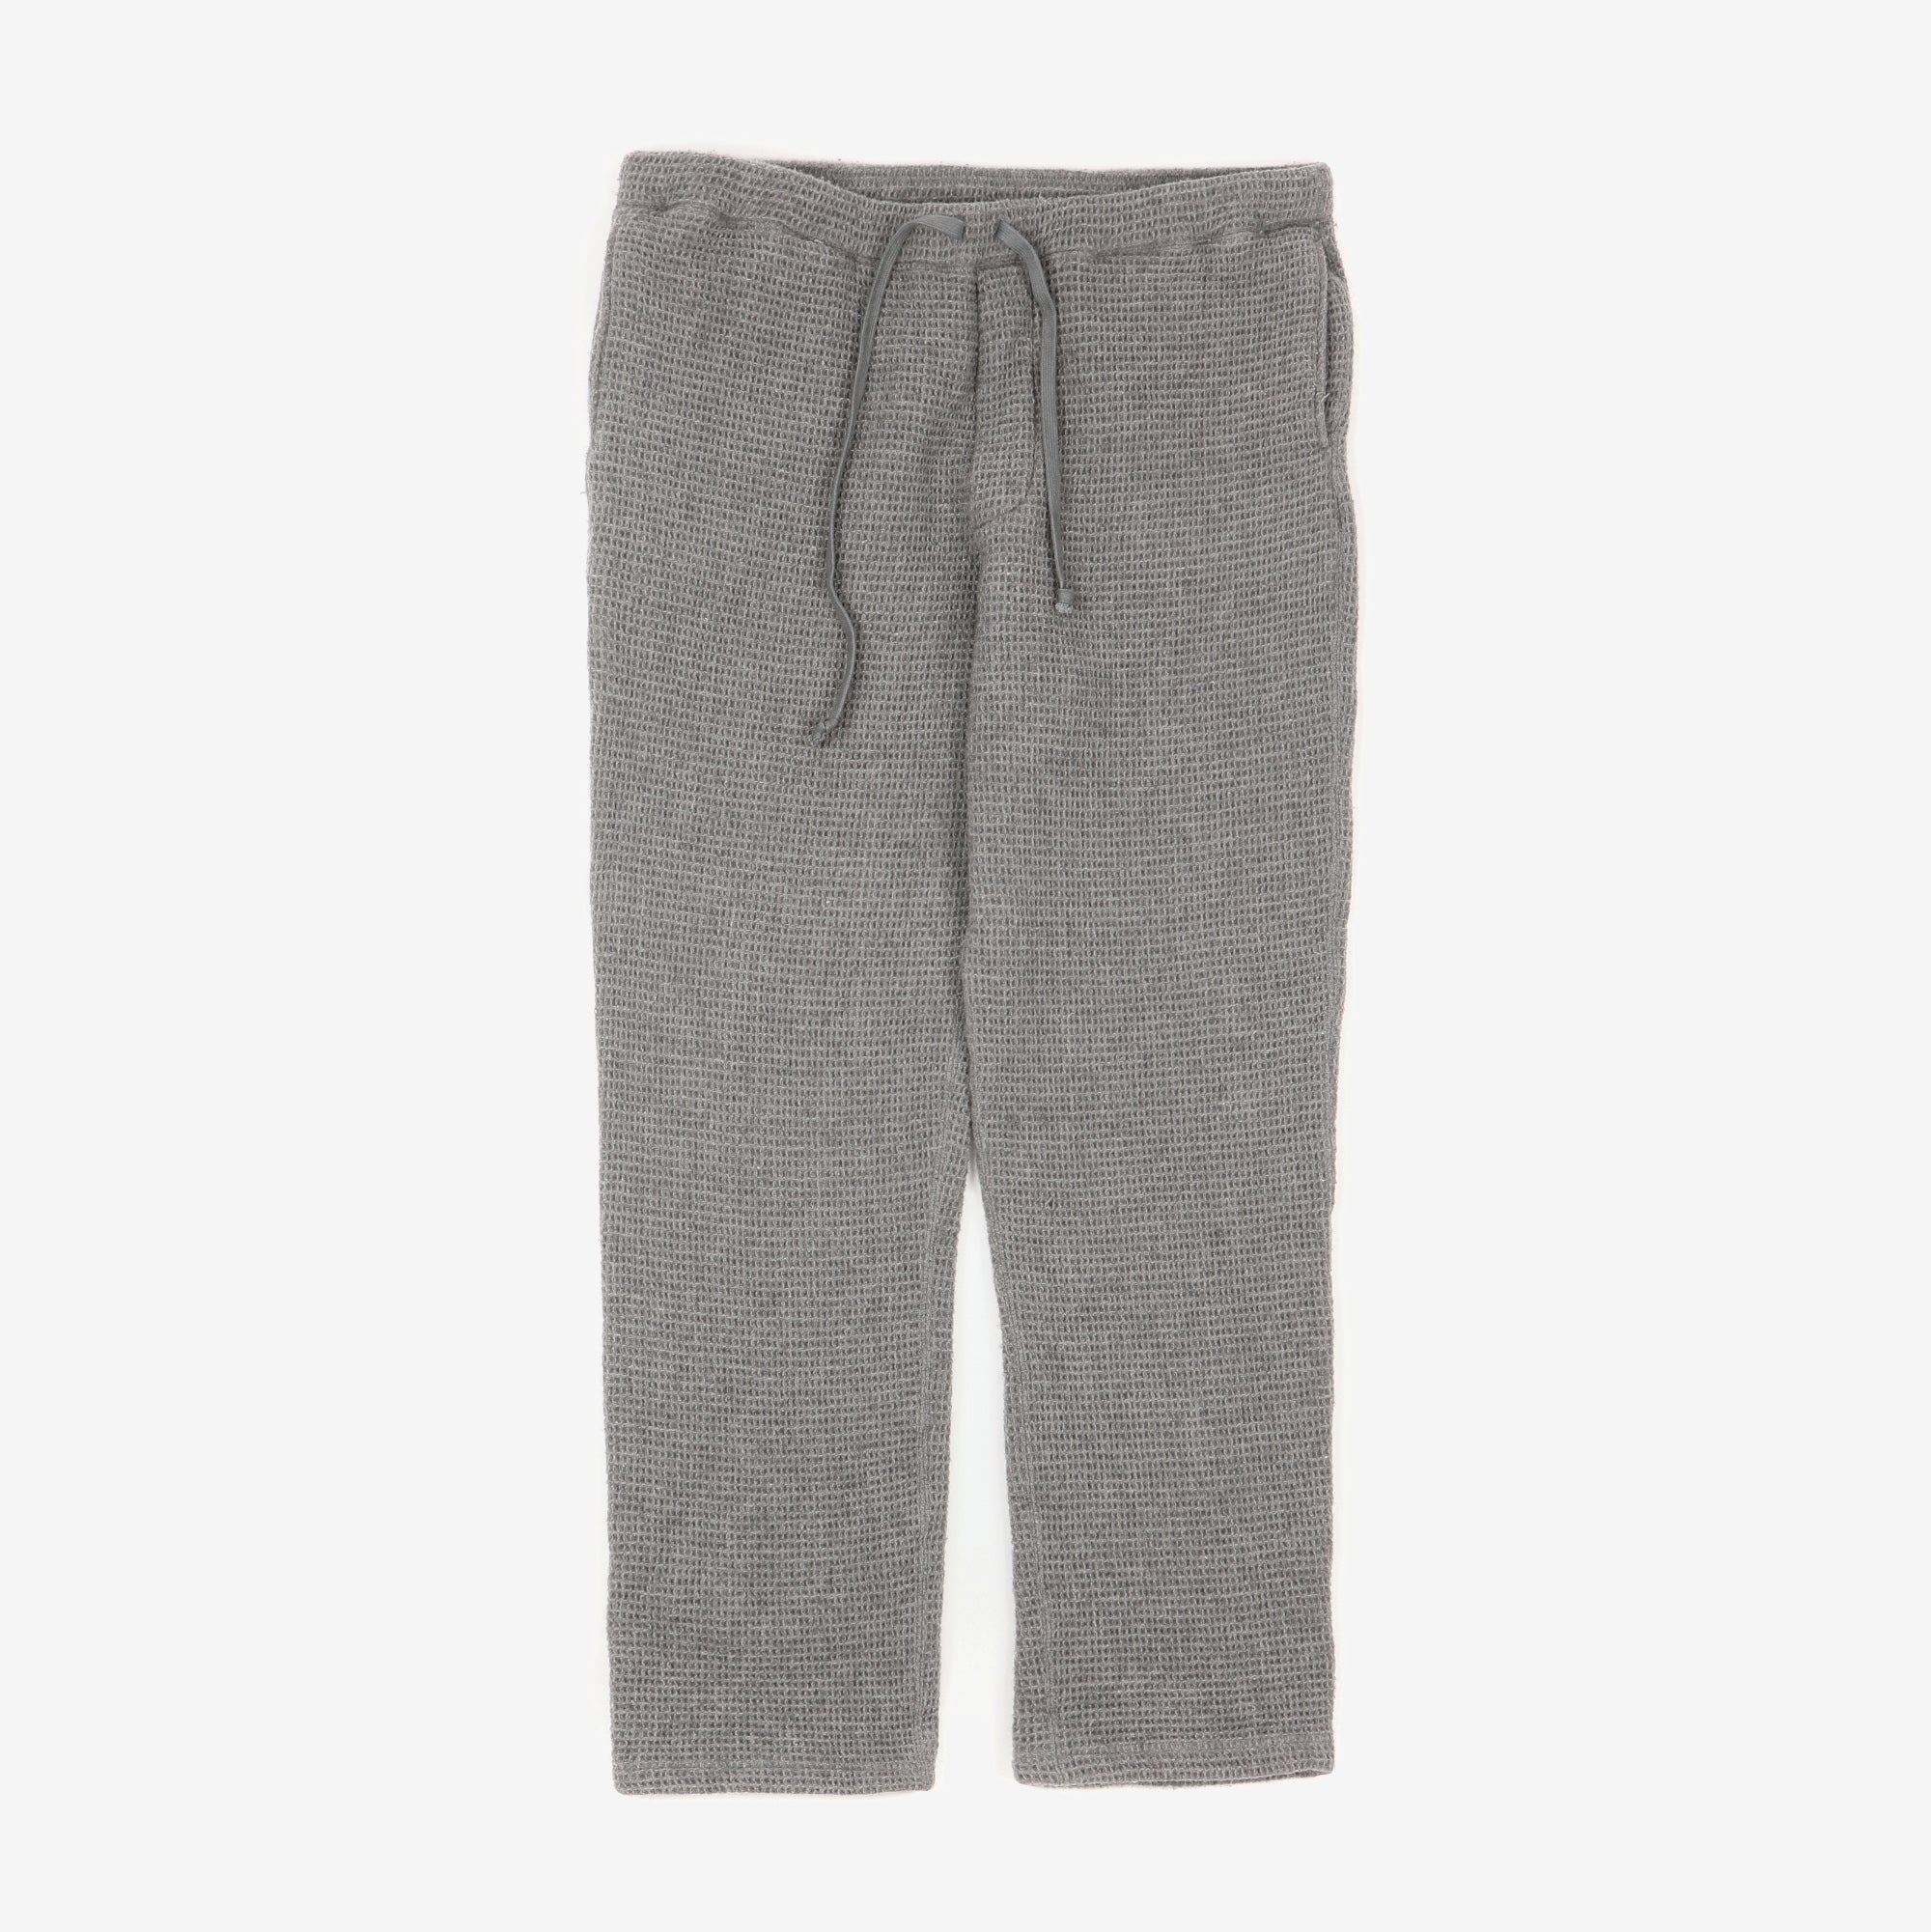 Straight Cut Wool Sweatpants